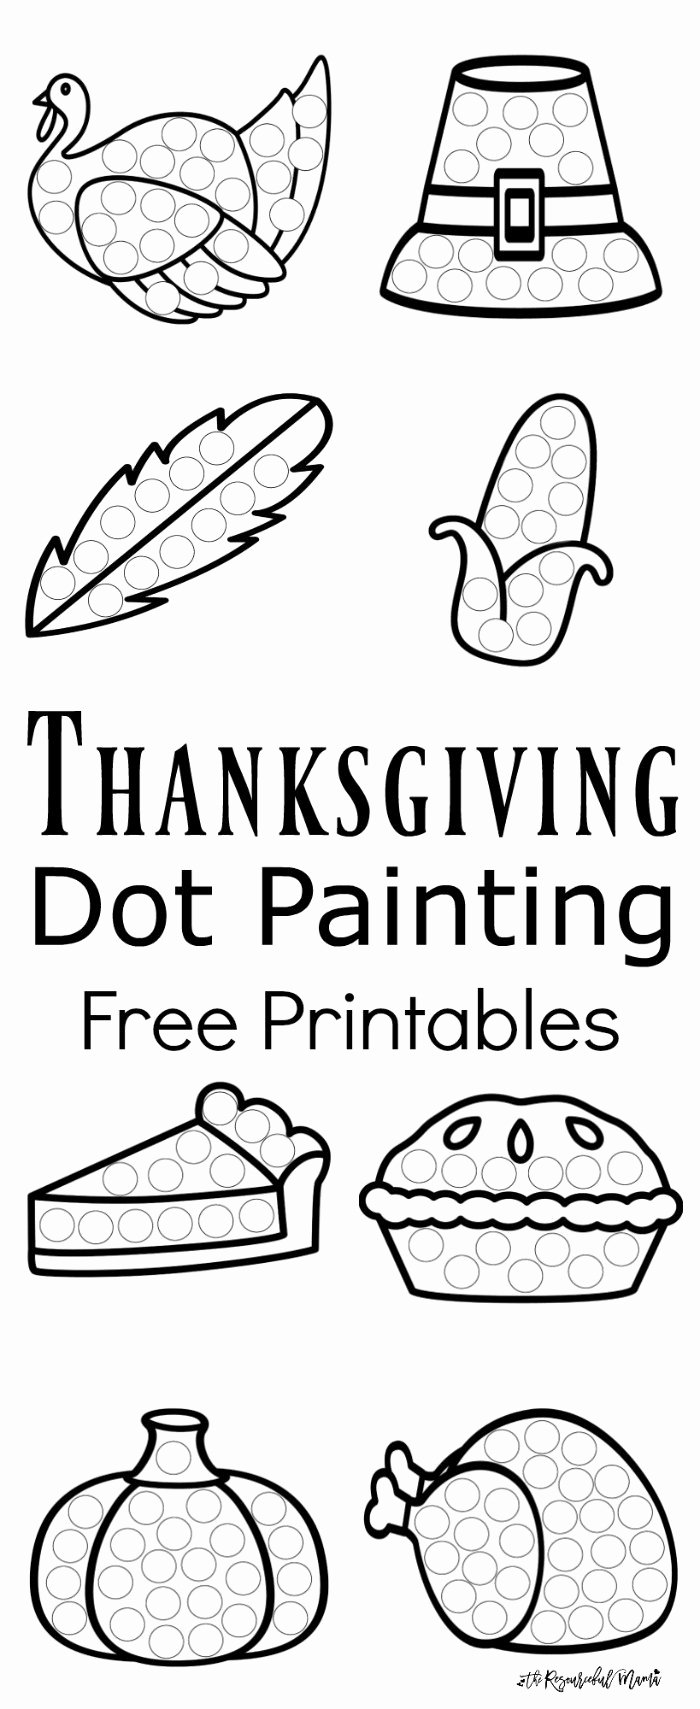 Eye Hand Coordination Activities Worksheets for Preschoolers Fresh Thanksgiving Dot Painting Free Printables the